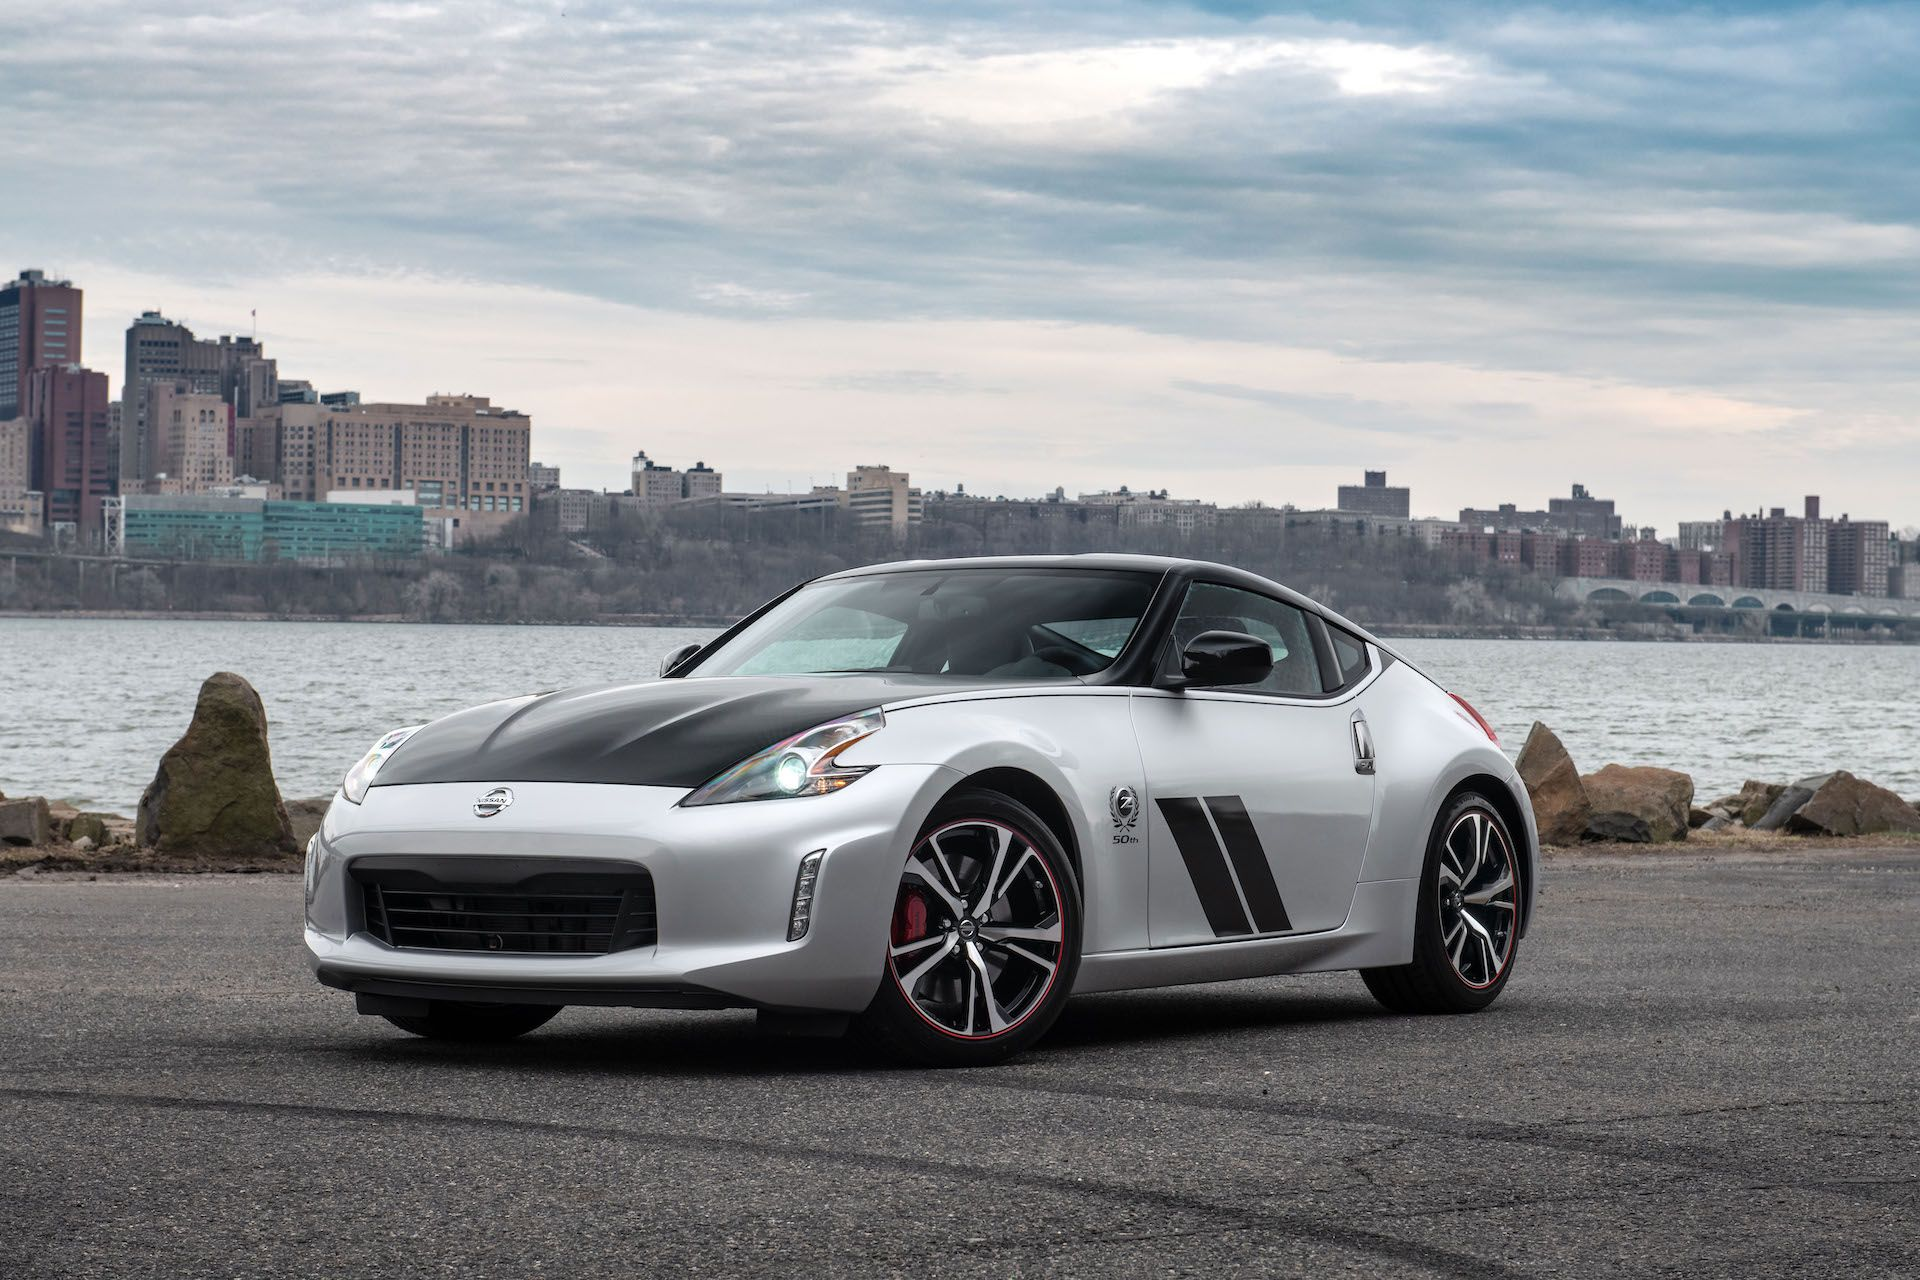 2020 Nissan 370Z 50th Anniversary Edition a 2,600 option